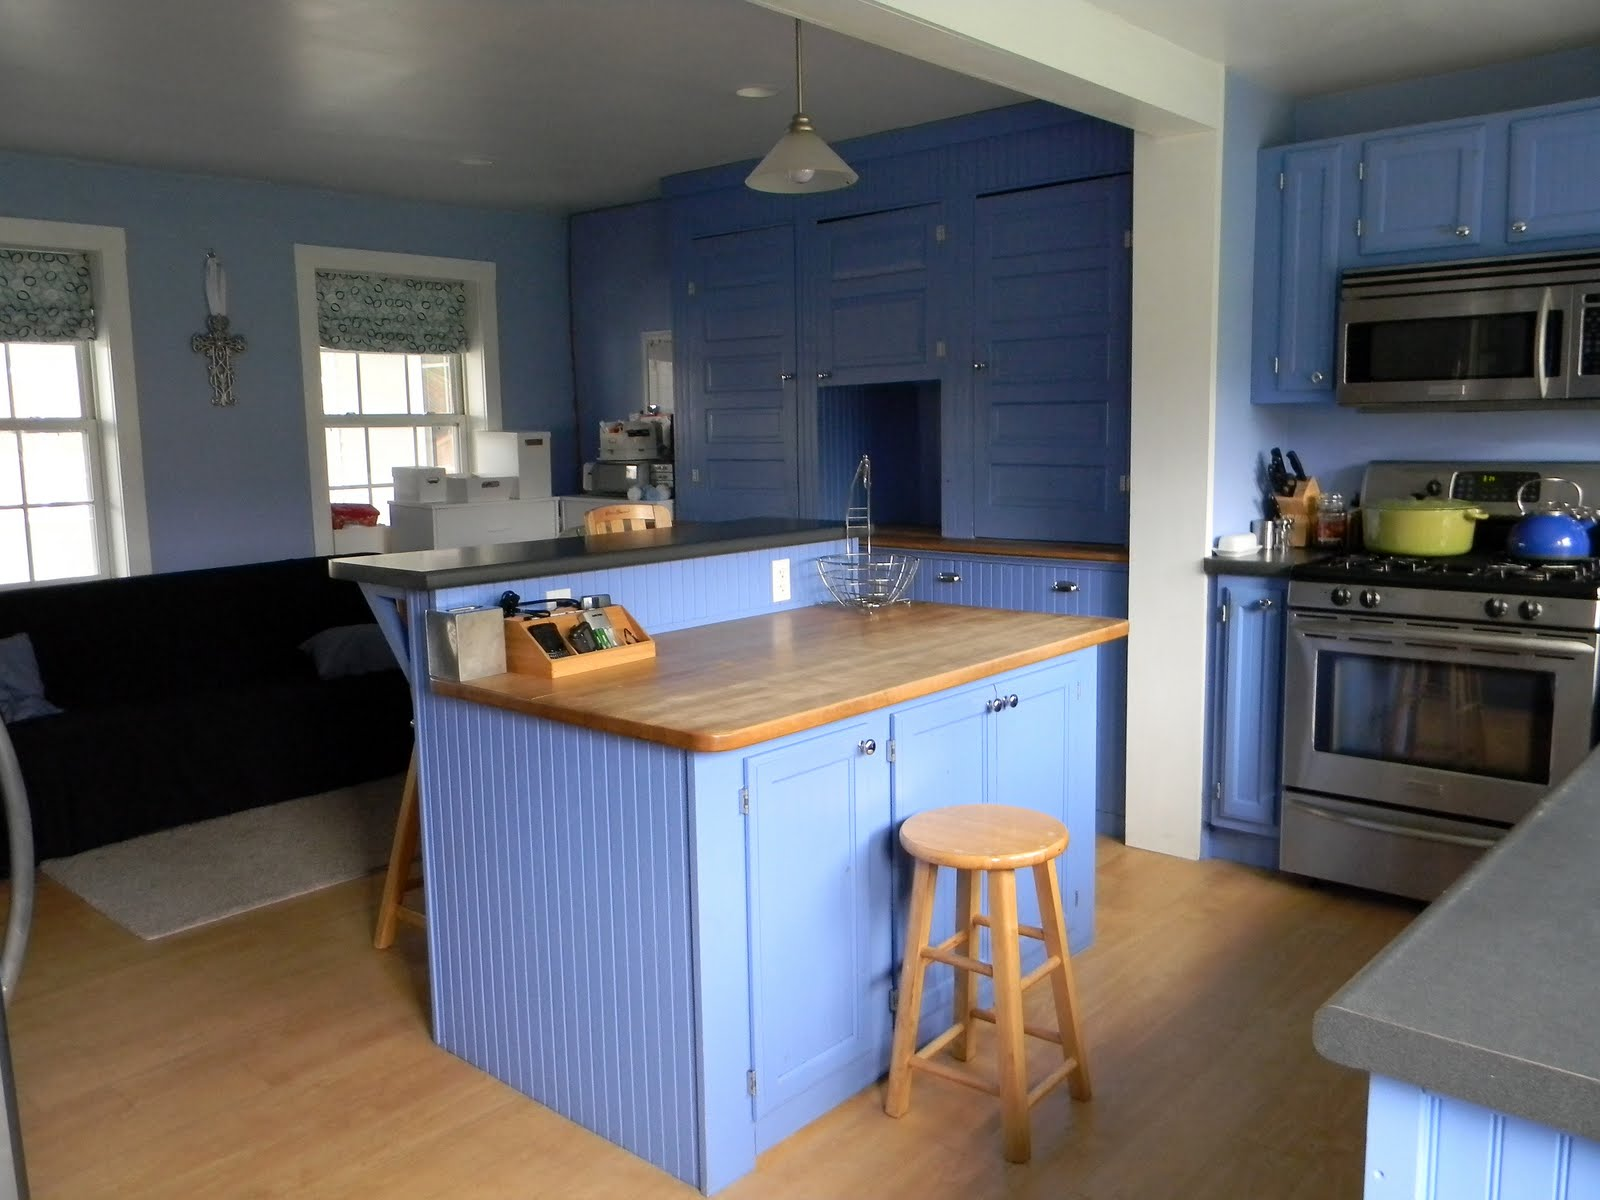 Remodelaholic | Old Farmhouse Kitchen Remodel